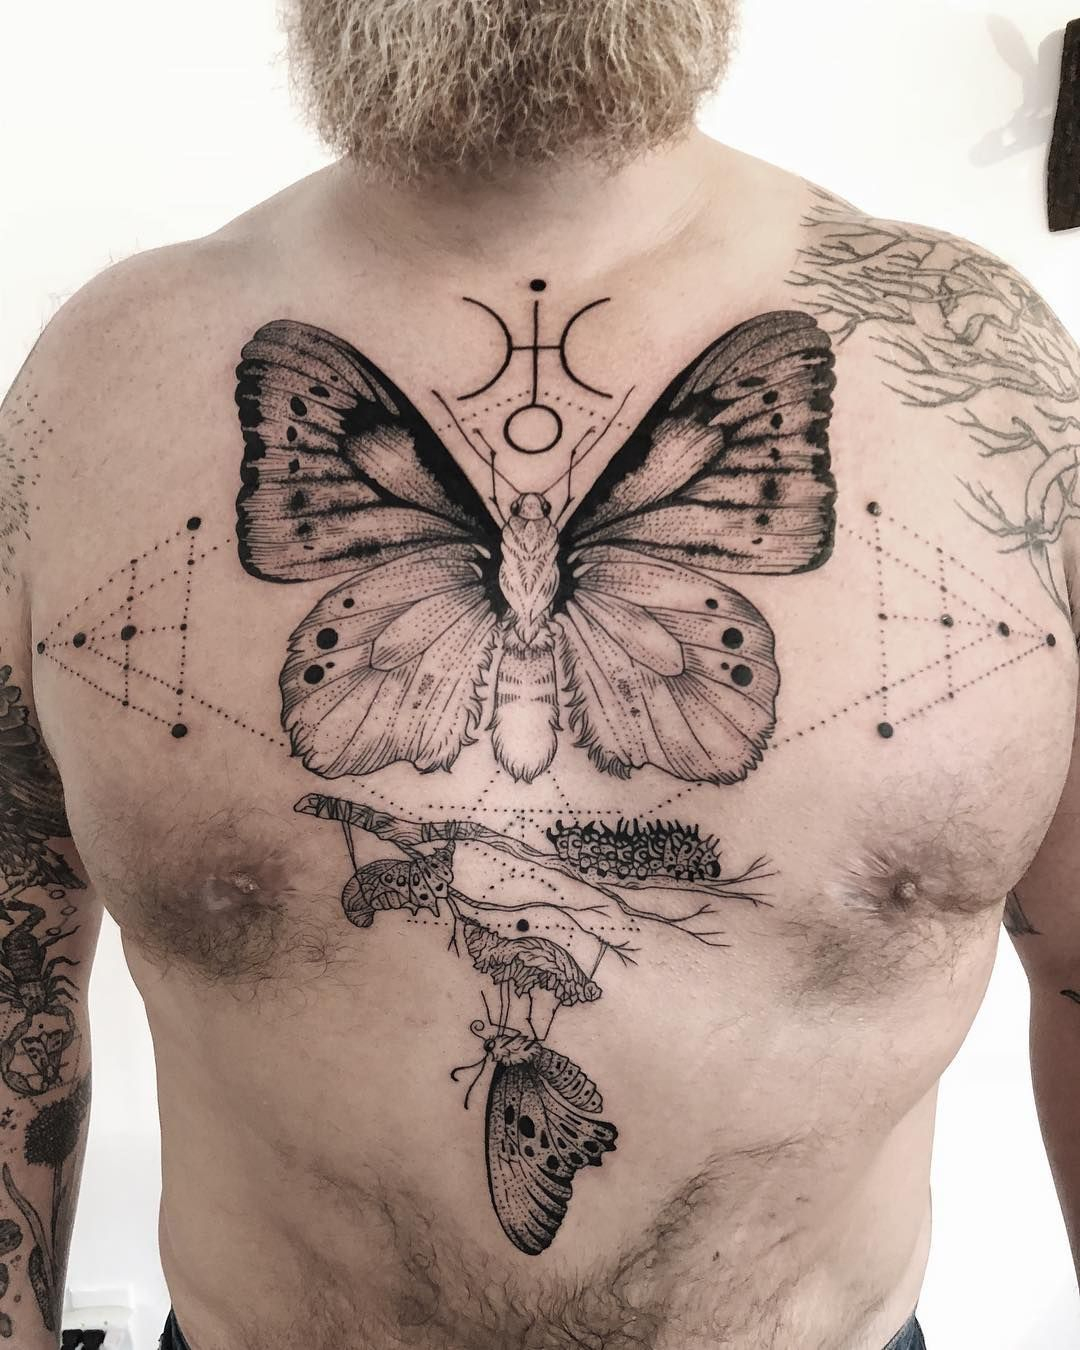 Metamorphosis Of A Butterfly Freeorgy Arthropodtattoos pertaining to measurements 1080 X 1350